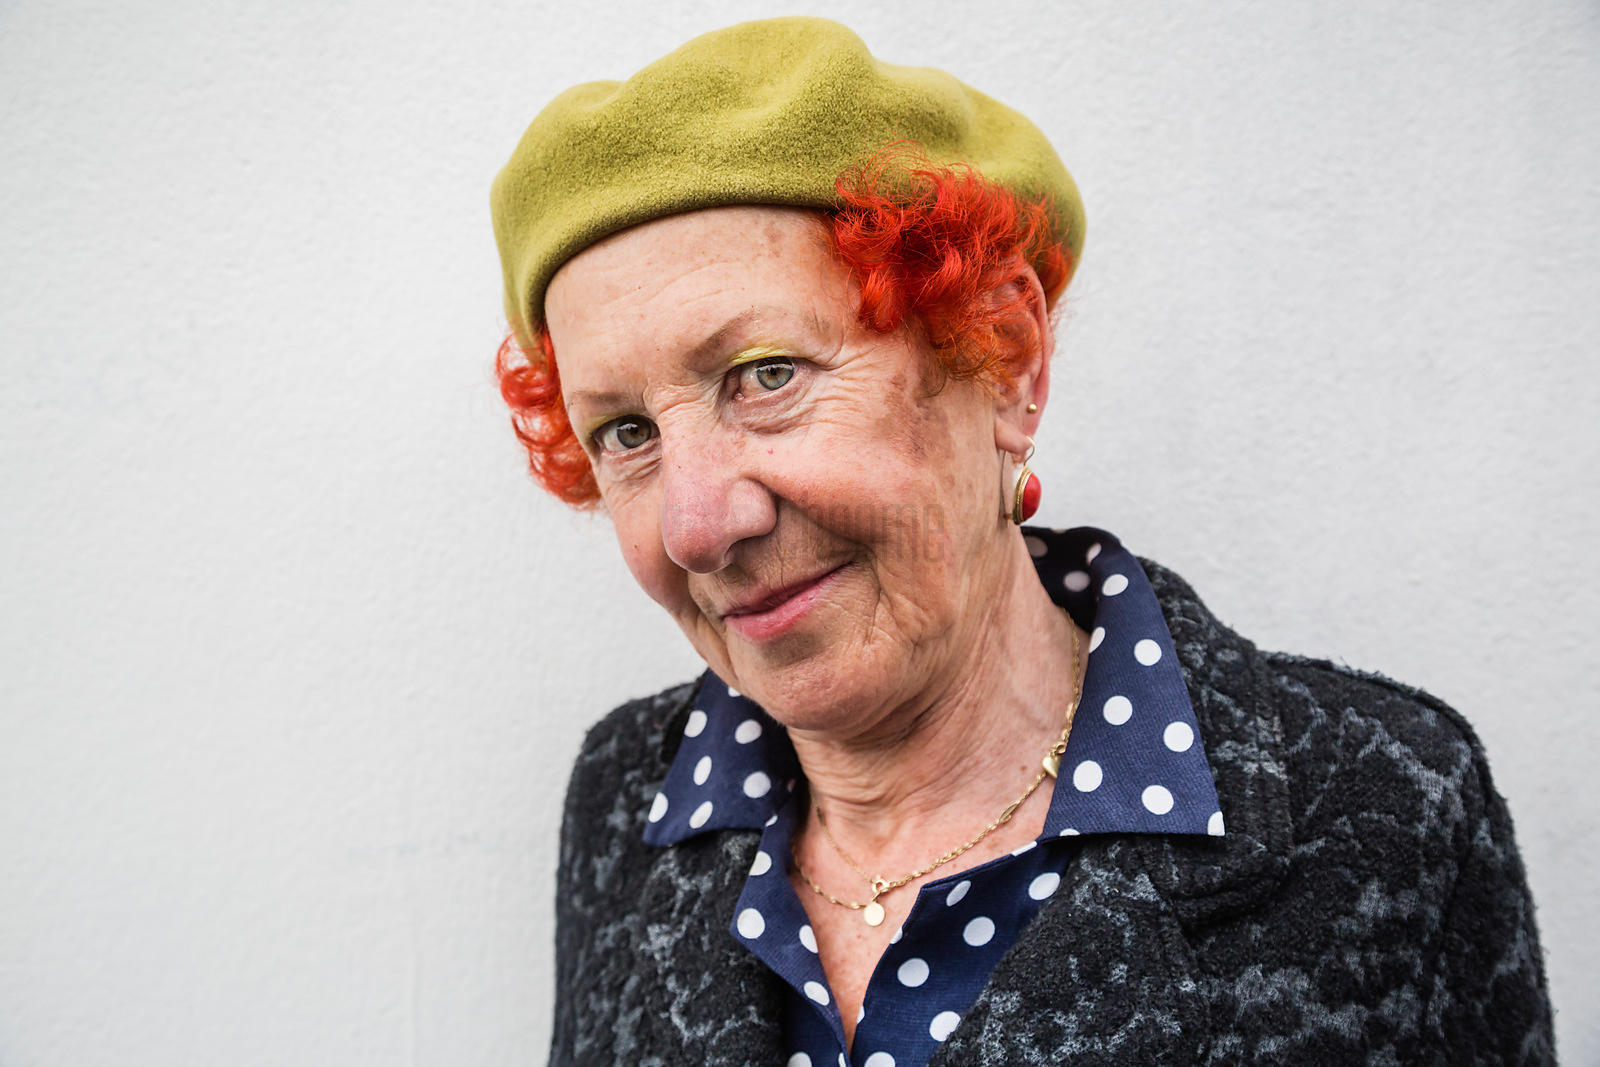 Portrait of a Woman with Orange Hair & a Green Beret